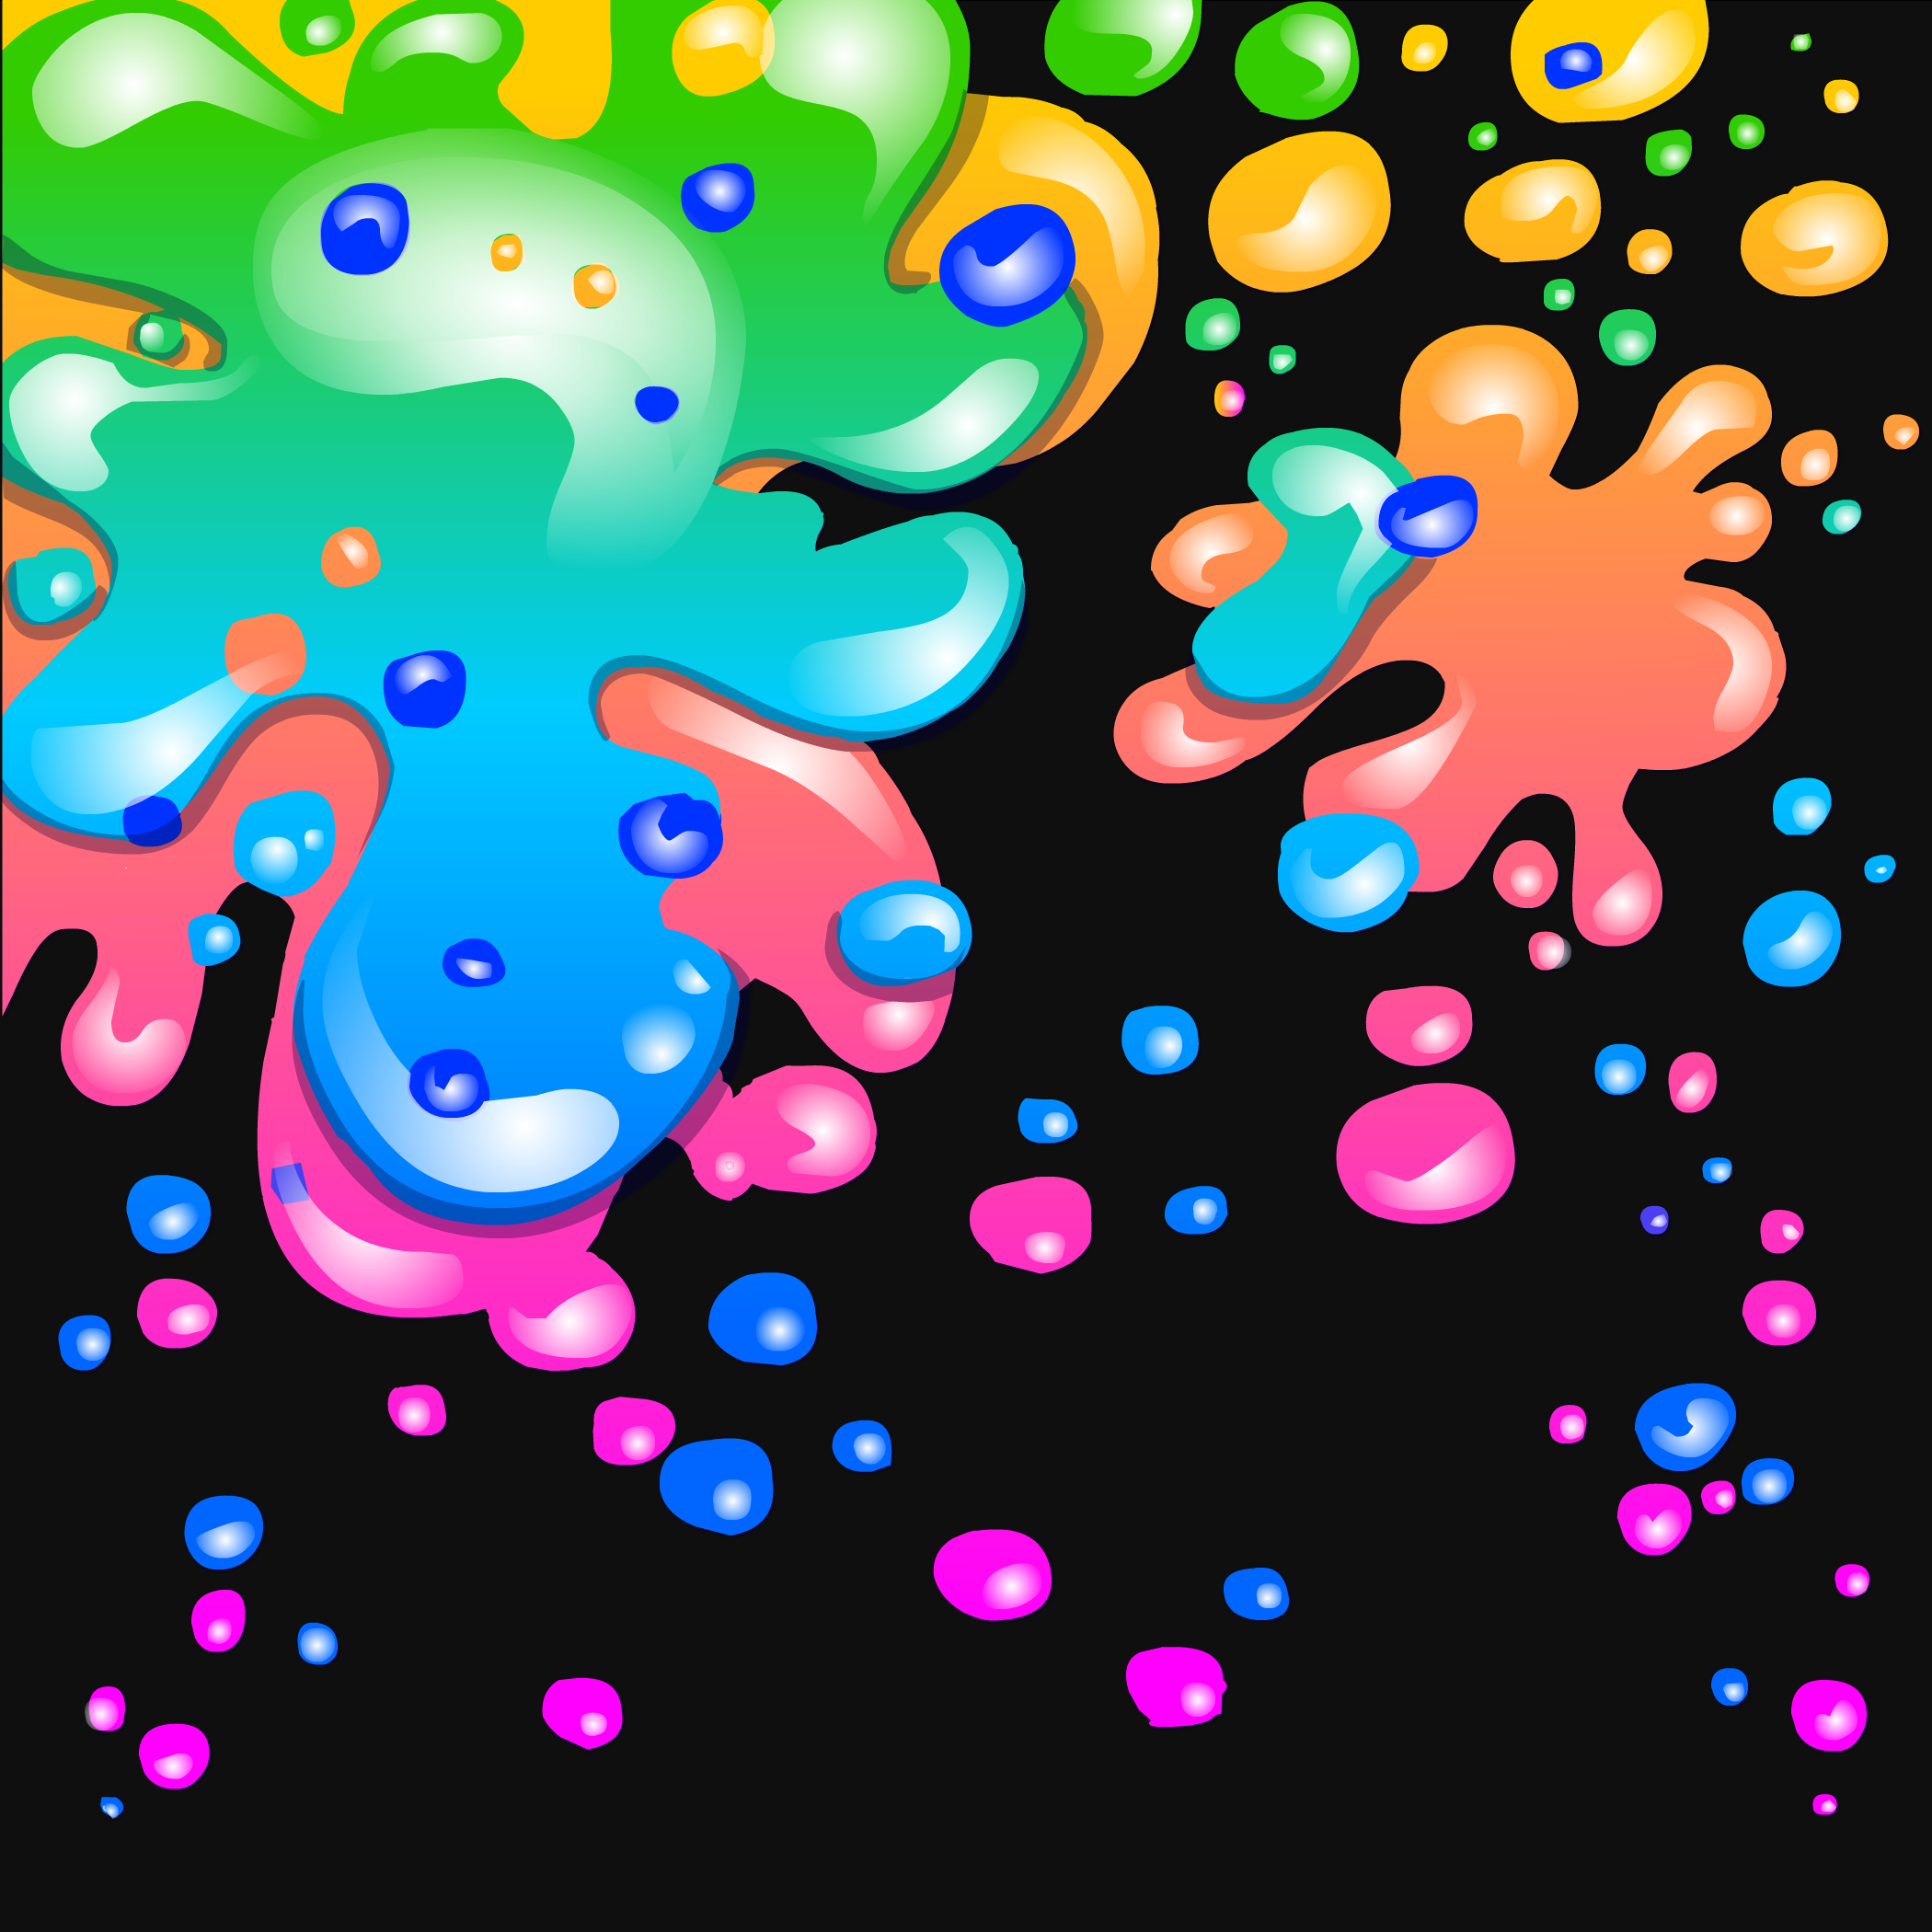 Neon Paint Splatter Background - Club Penguin Wiki - The ...